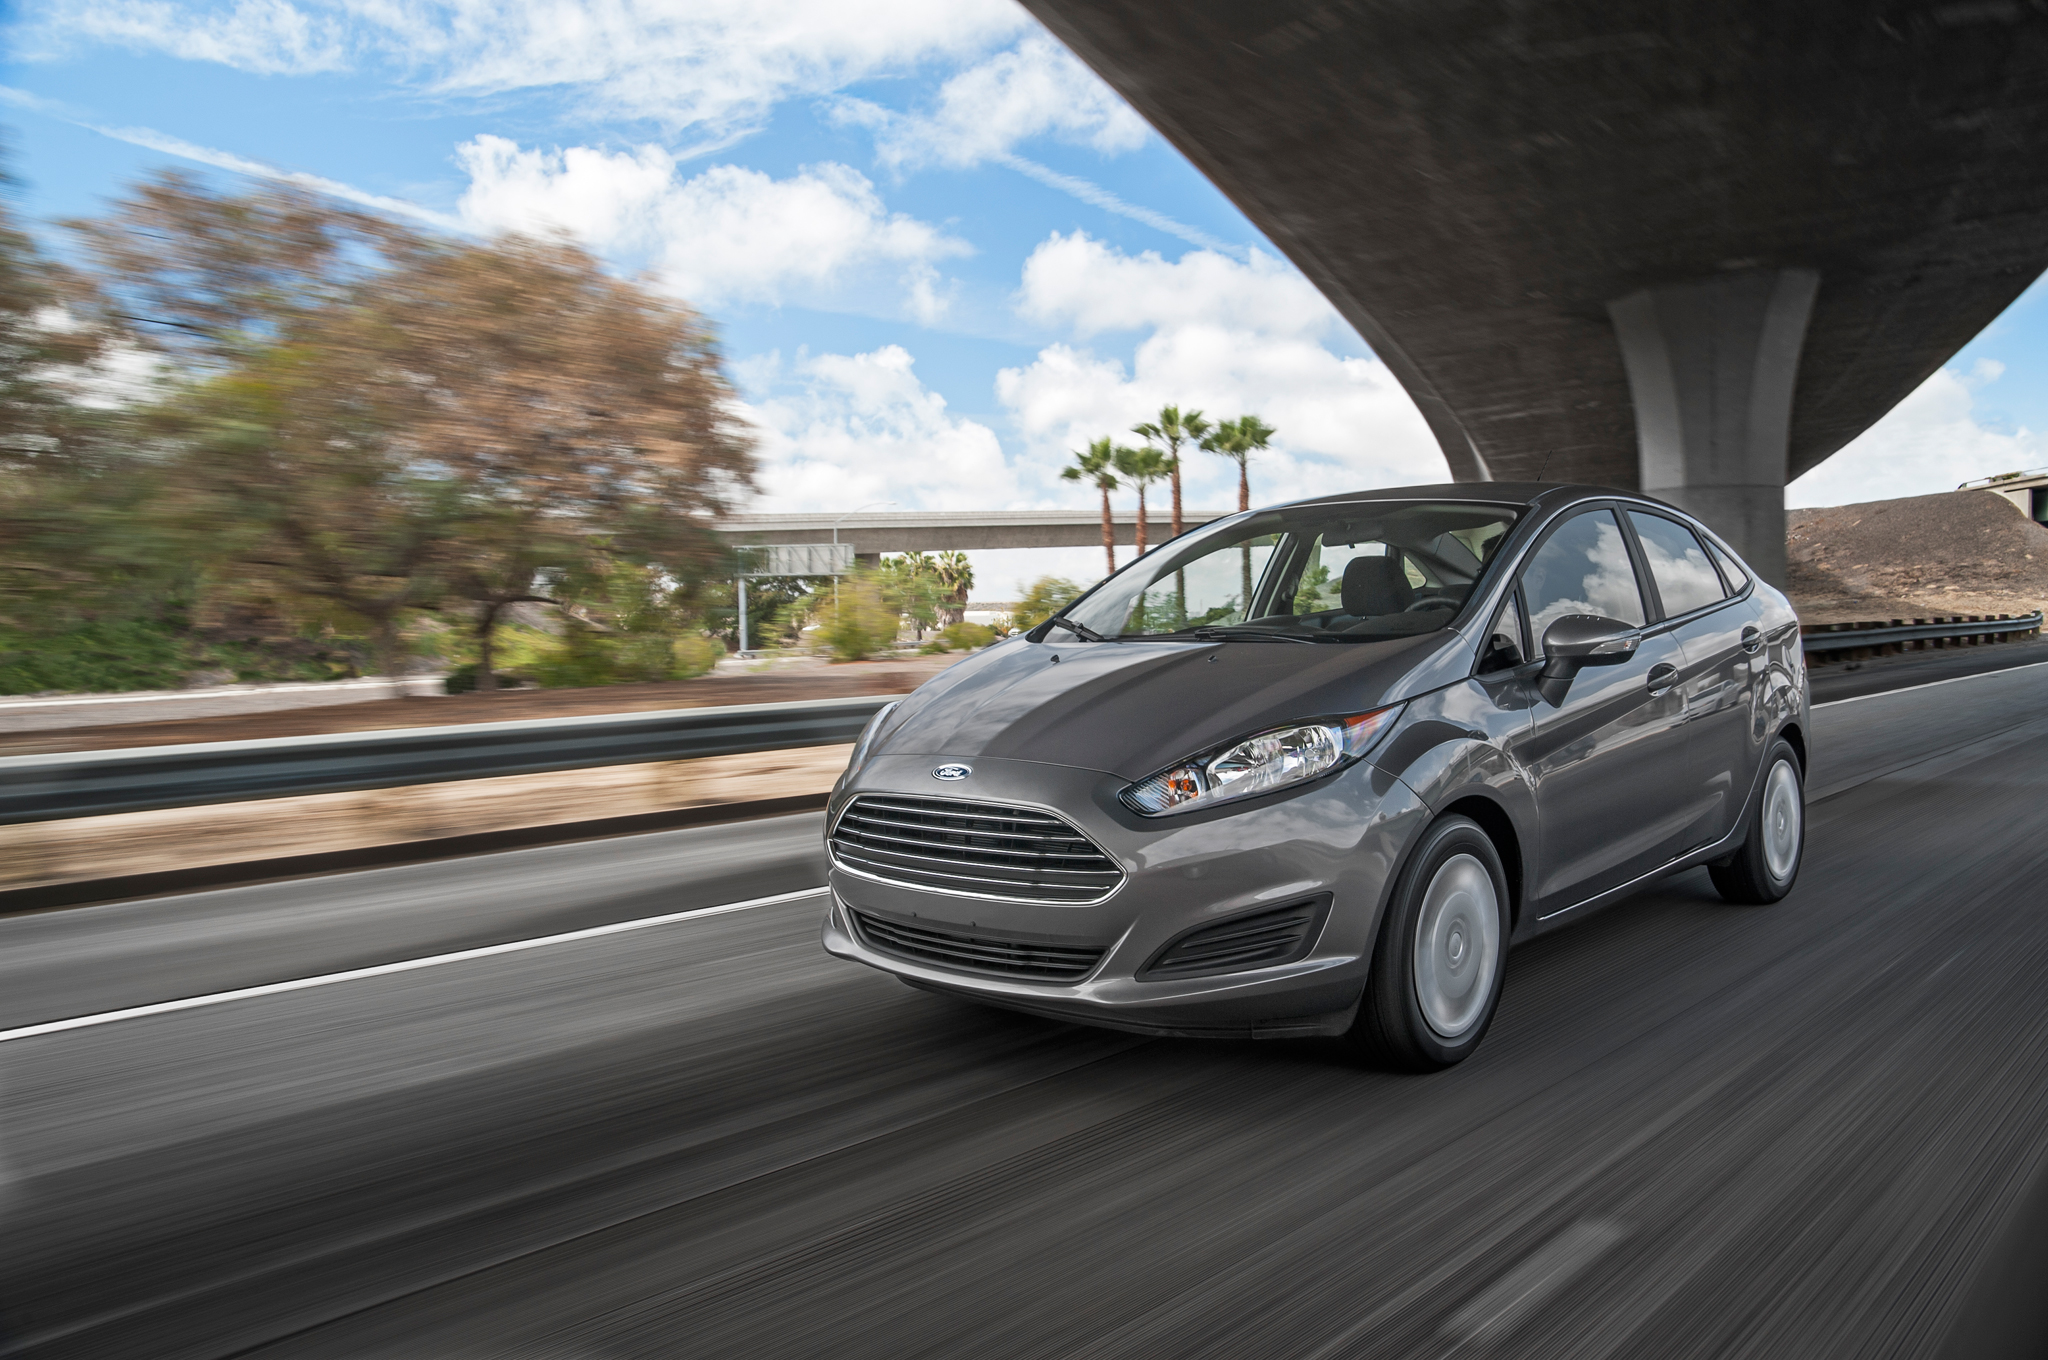 TOTD: You Pick - 2014 Ford Fiesta SFE EcoBoost or 2015 Honda Fit?